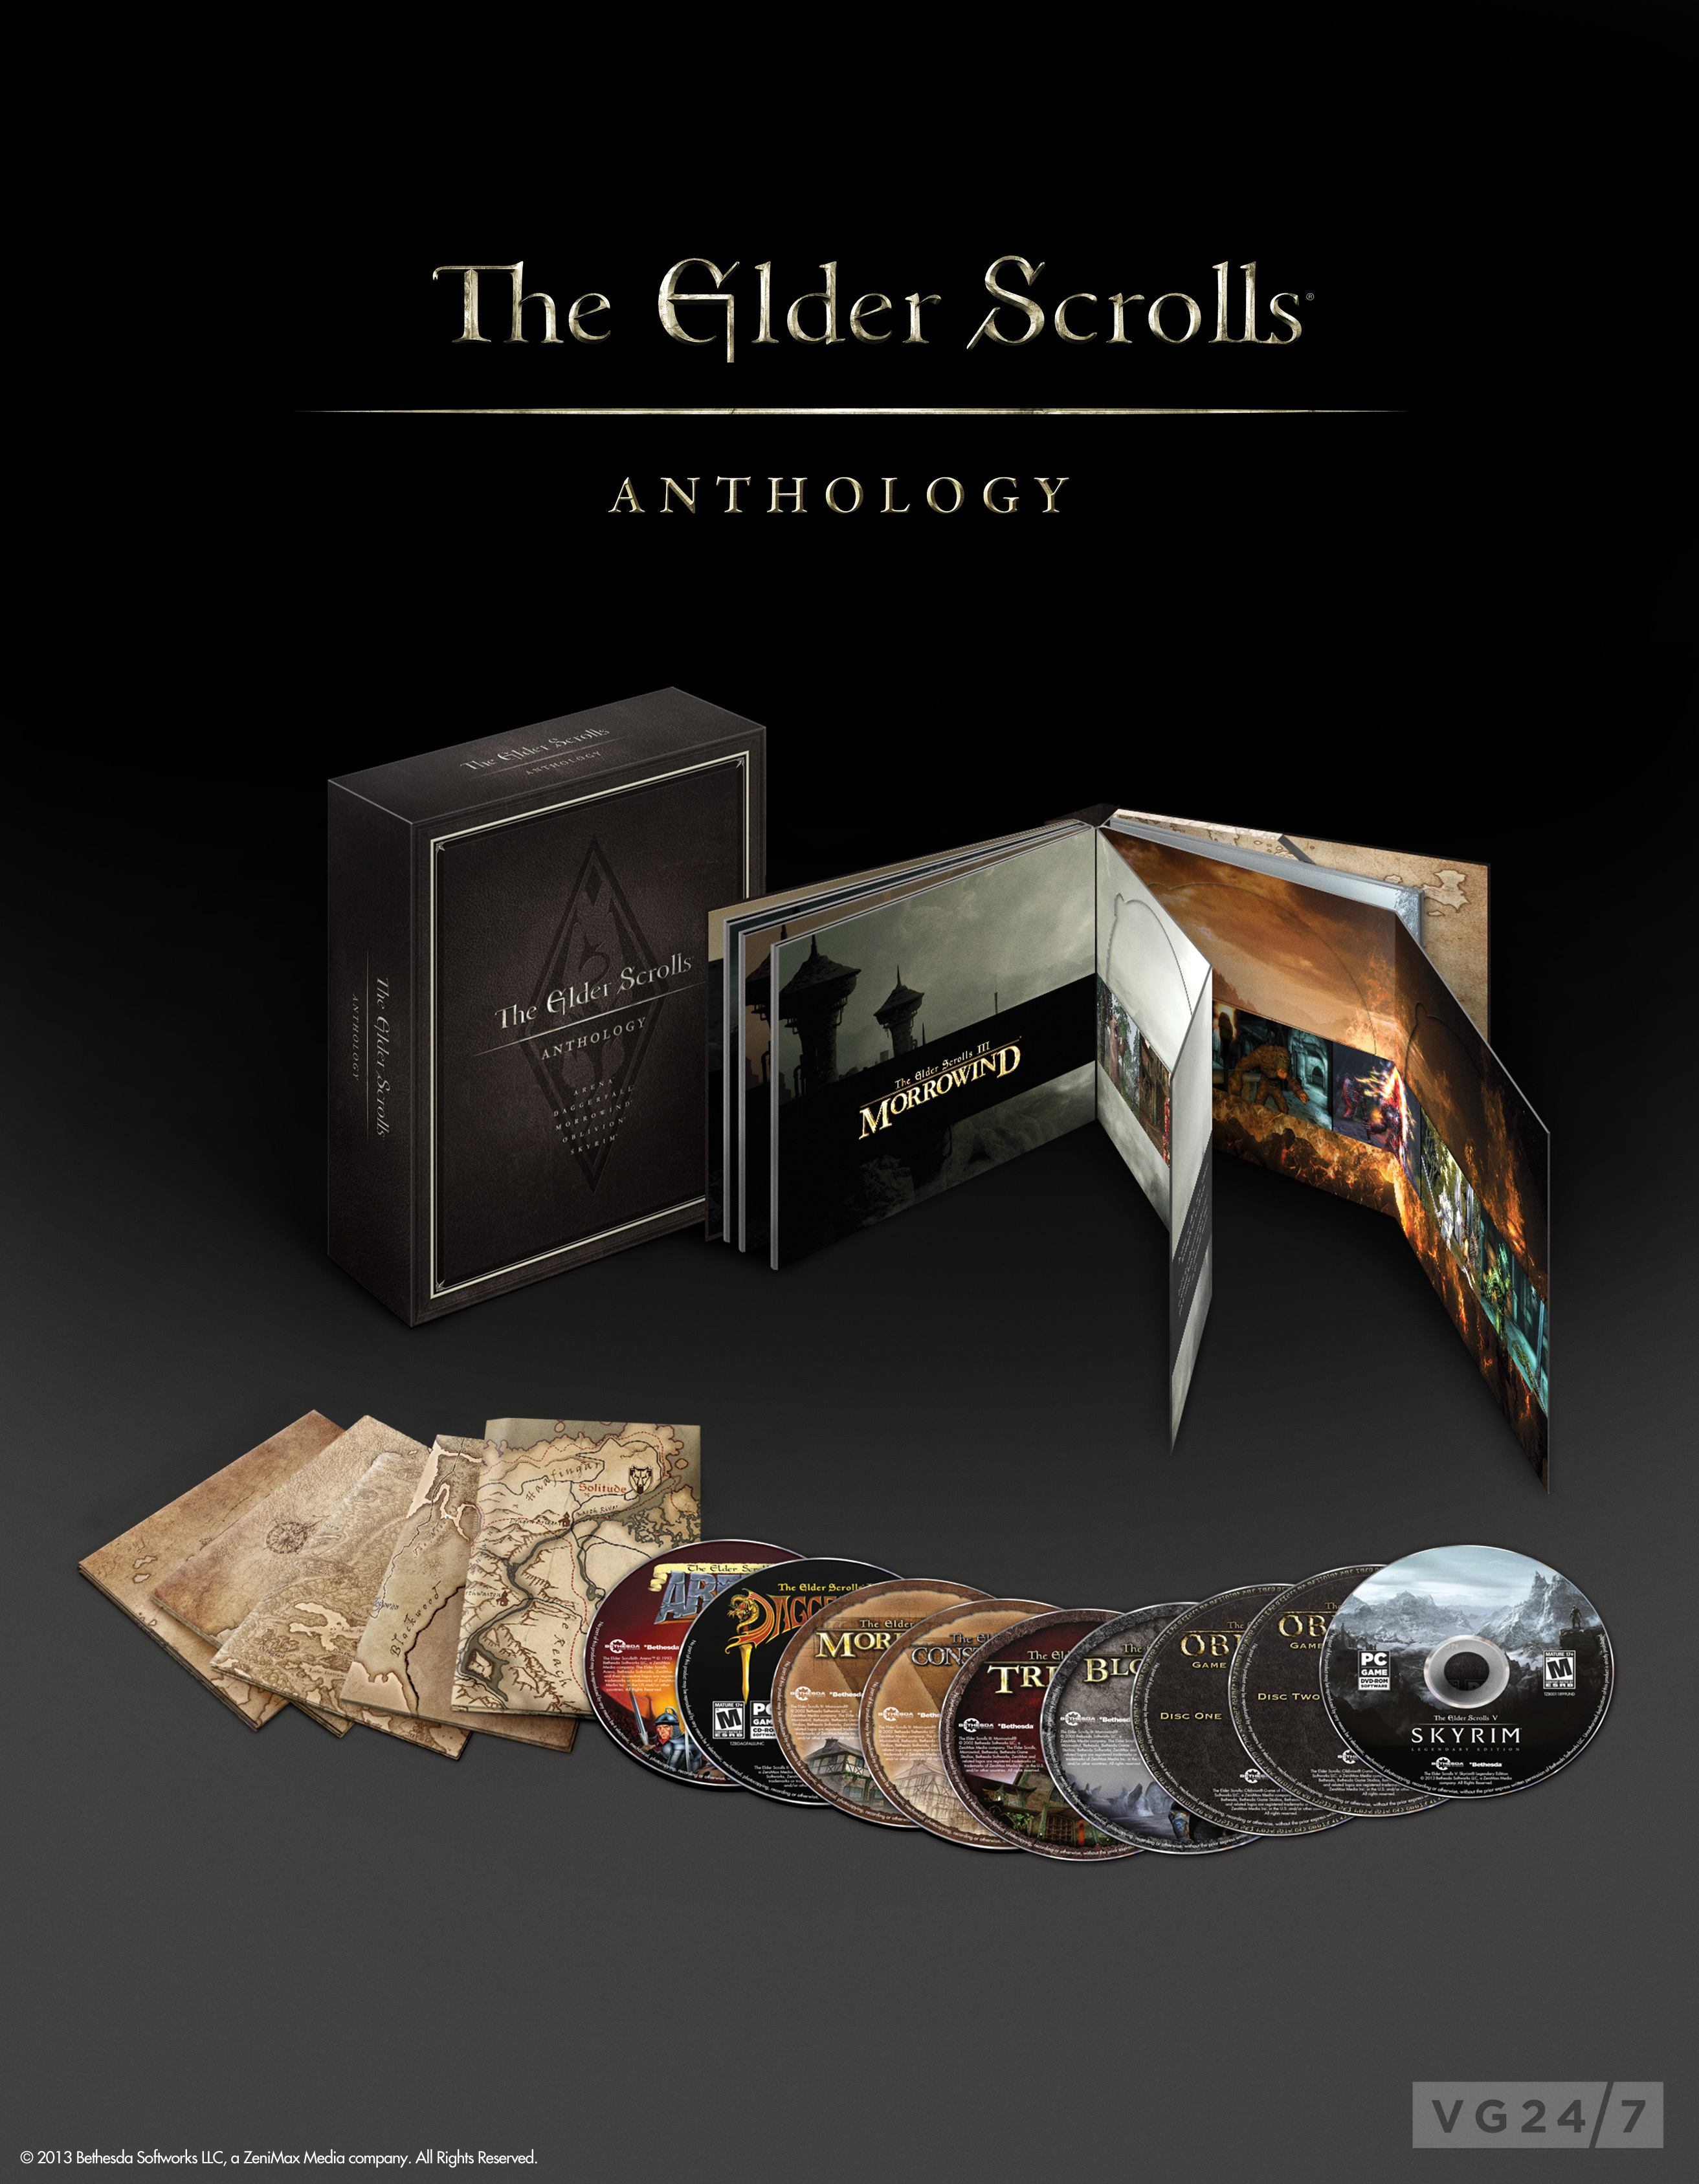 The elder scrolls online release date for xbox one